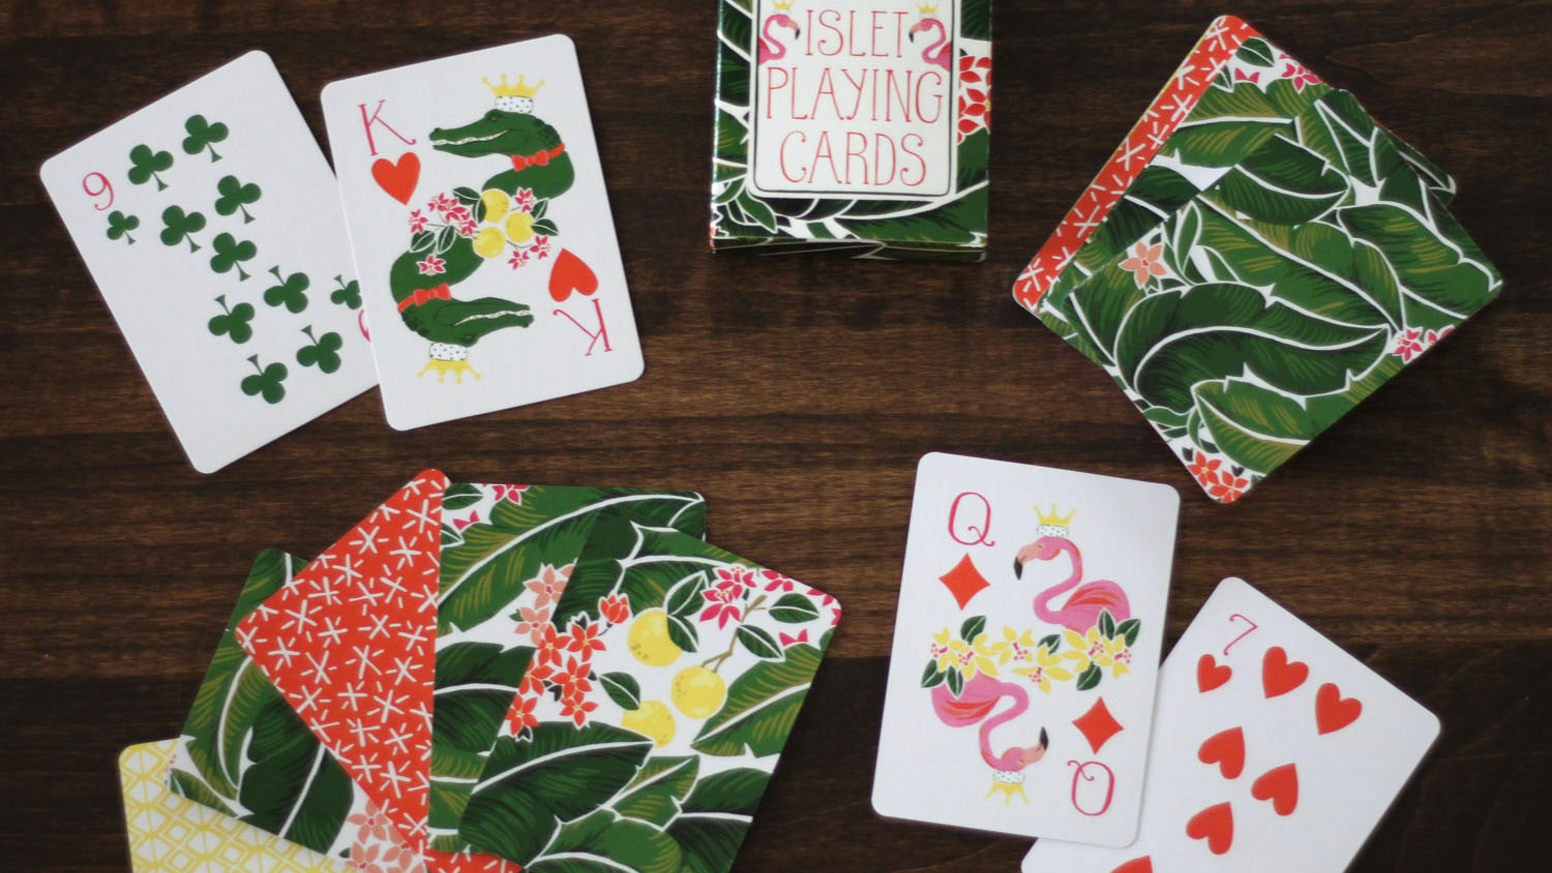 Original hand-painted illustrated deck of playing cards with queen flamingos, king alligators, banana leaves and geometric patterns.